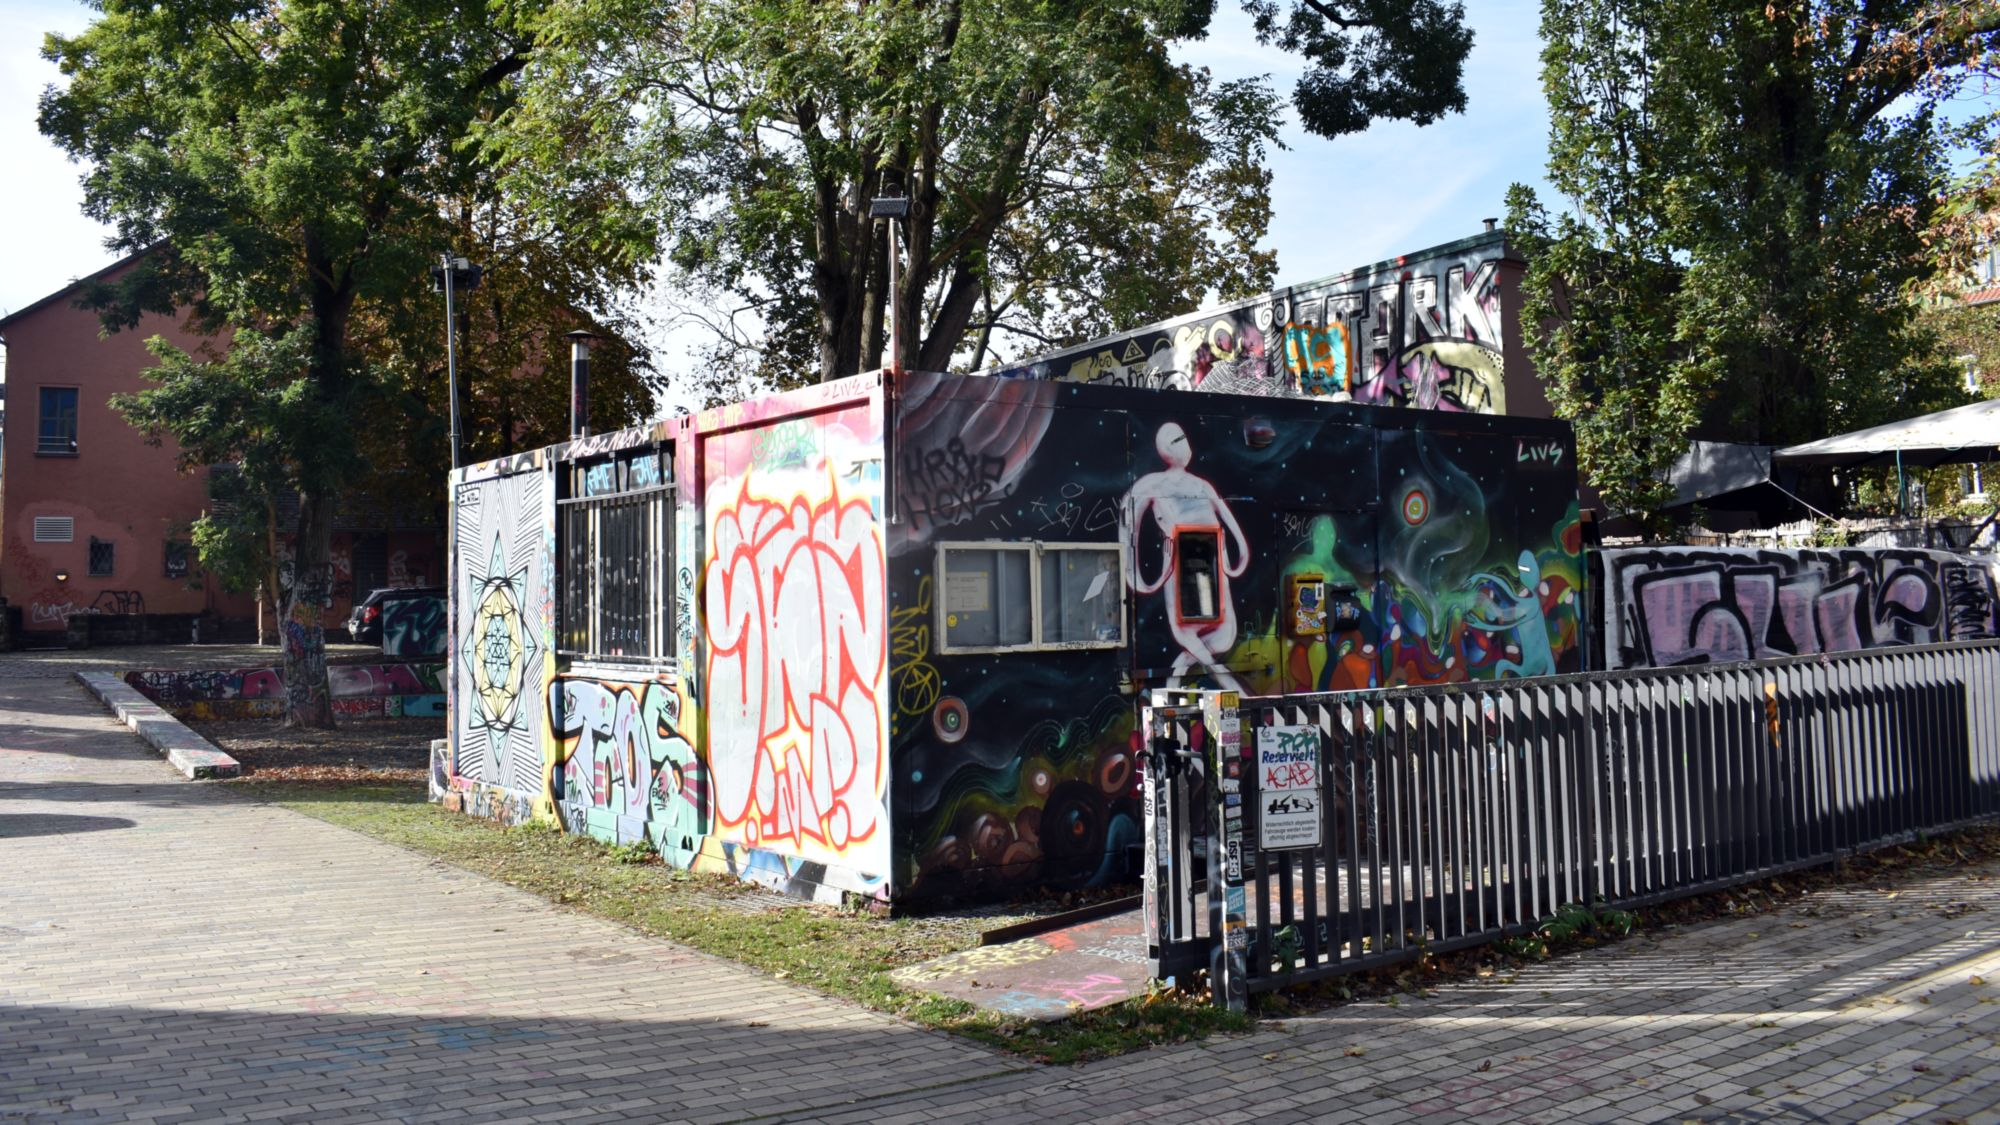 Jeden Donnerstag: Suppe im Container